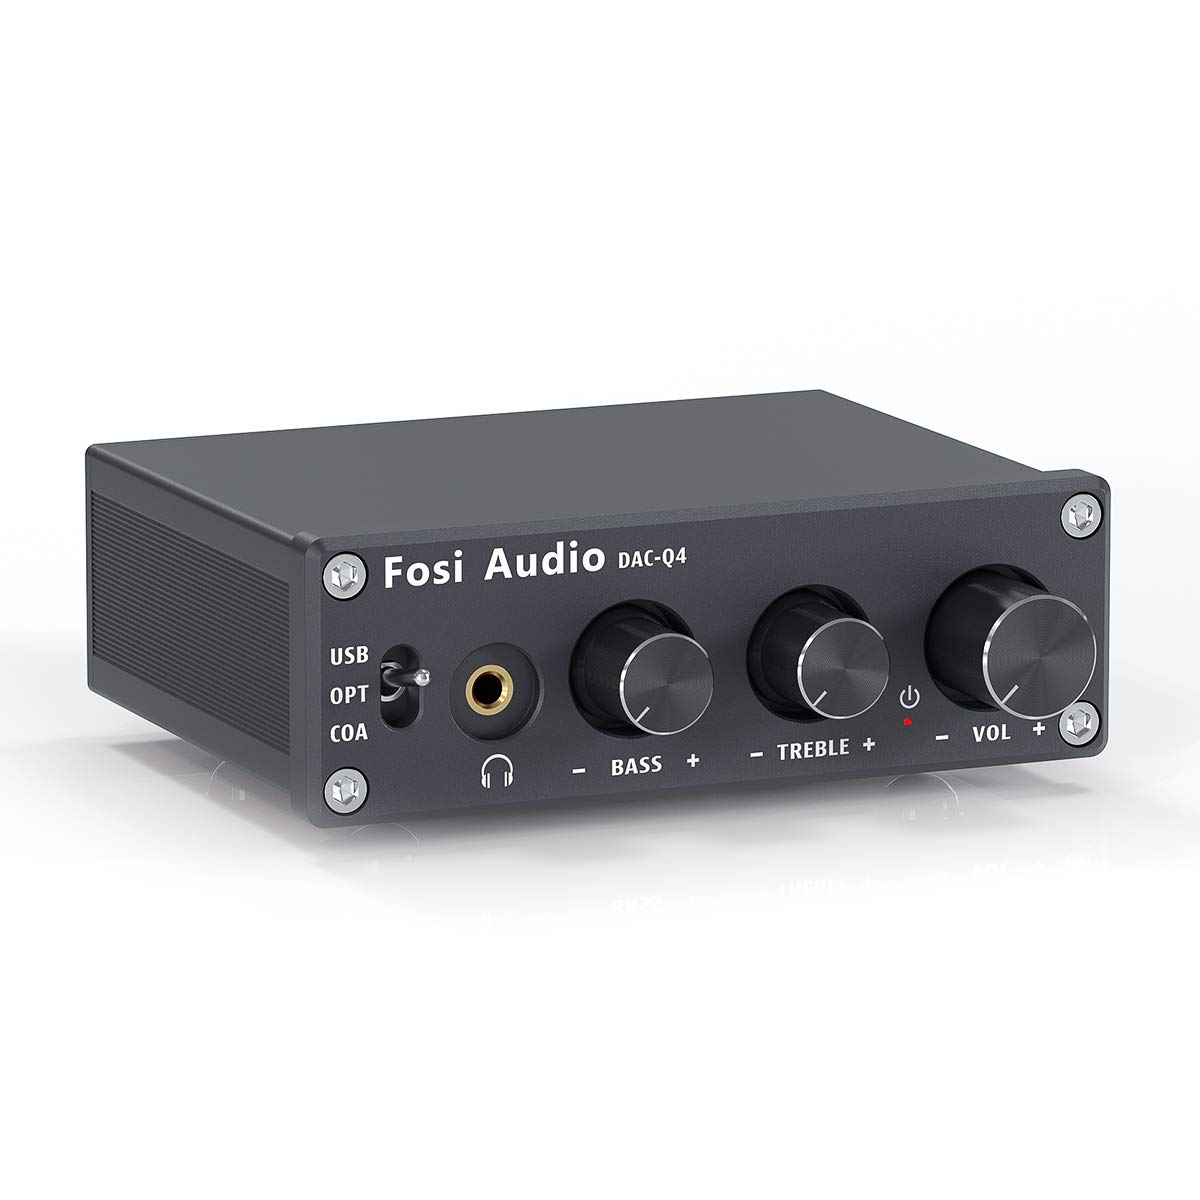 Fosi Audio Q4 - Mini Gaming Stereo DAC & Headphone Amplifier, 24Bit/192KHz USB/Optical/Coaxial to RCA AUX, Digital-to-Analog Audio Converter Adapter for Home/Desktop Powered/Active Speakers